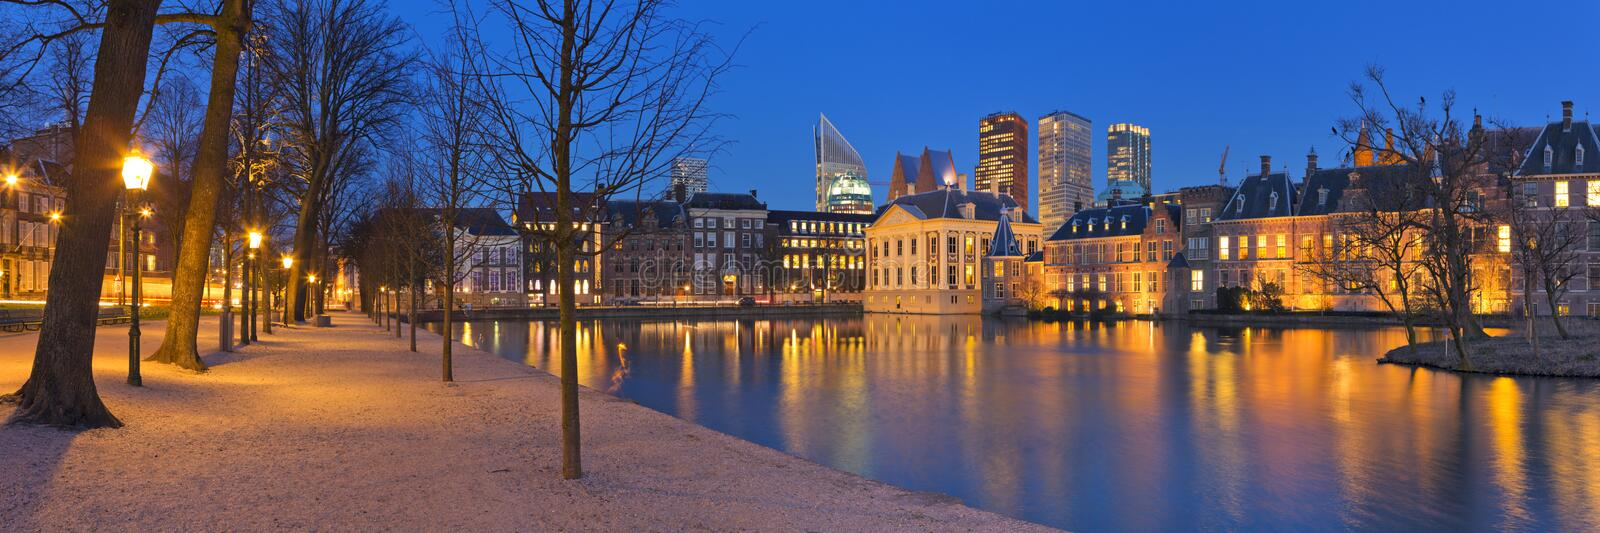 The Binnenhof in The Hague, The Netherlands at night royalty free stock photography